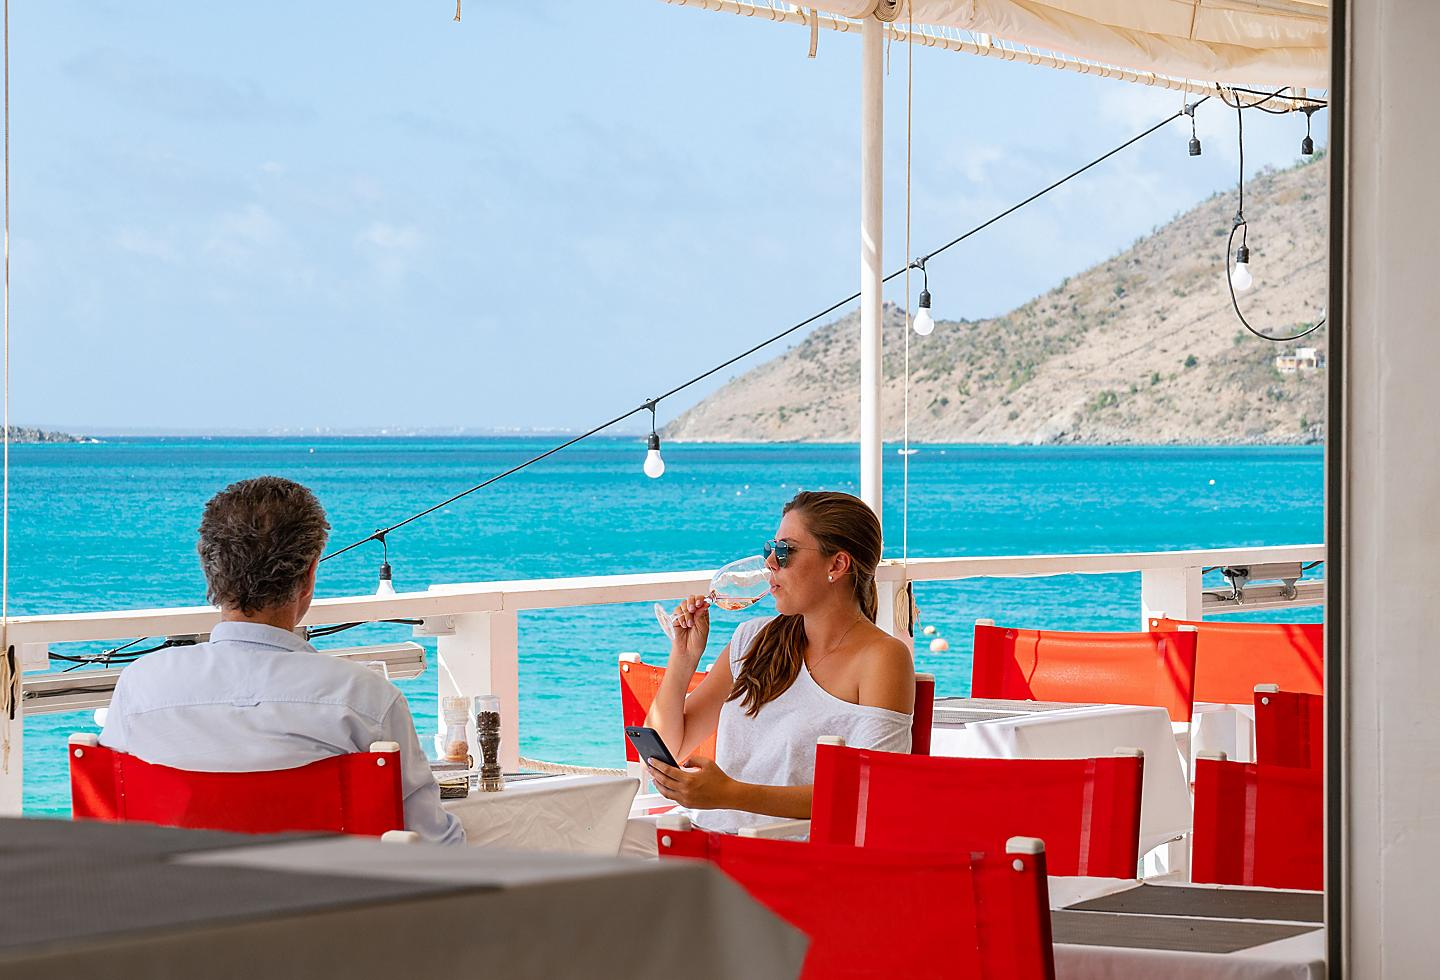 Foodie Couple Enjoying Beautiful St. Maarten Ocean View.